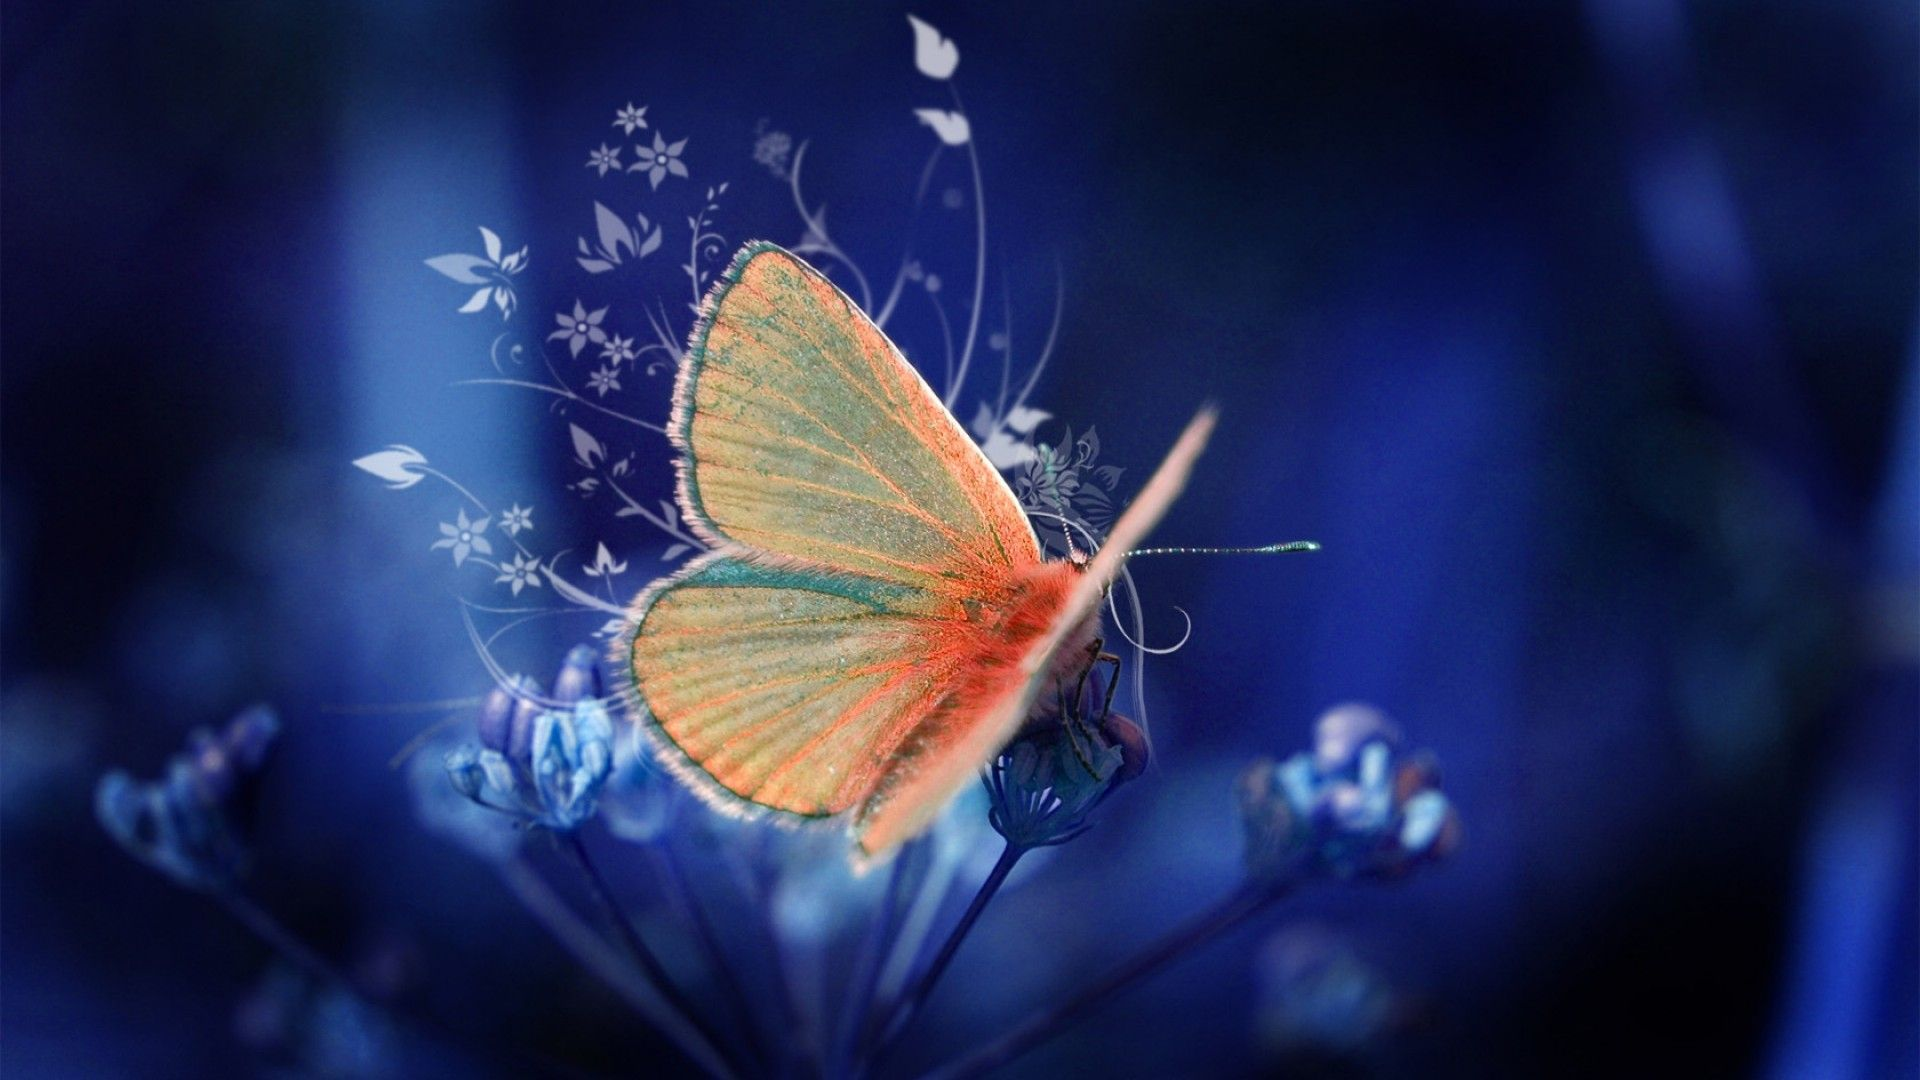 butterfly wallpapers free download (52 wallpapers) – adorable